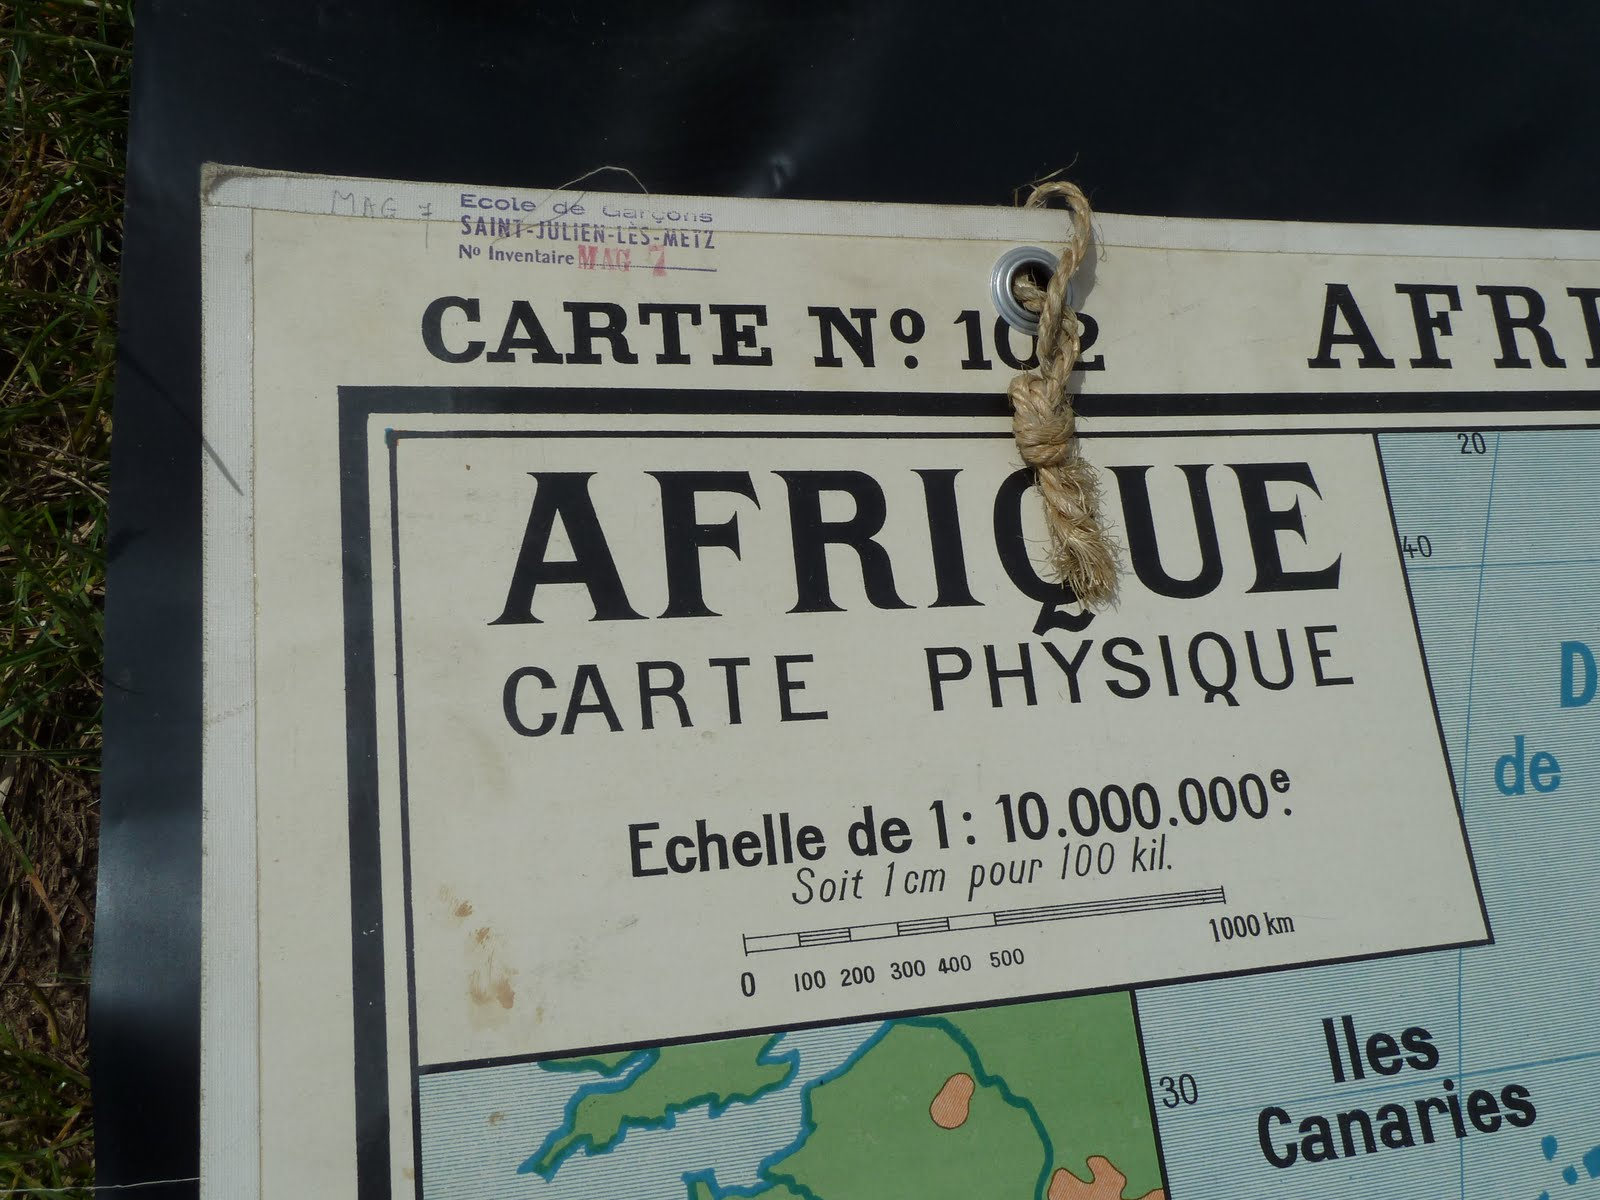 Ecole fmr 1000 affiches scolaires ancienne carte scolaire afrique 1950 - Carte scolaire ancienne ...